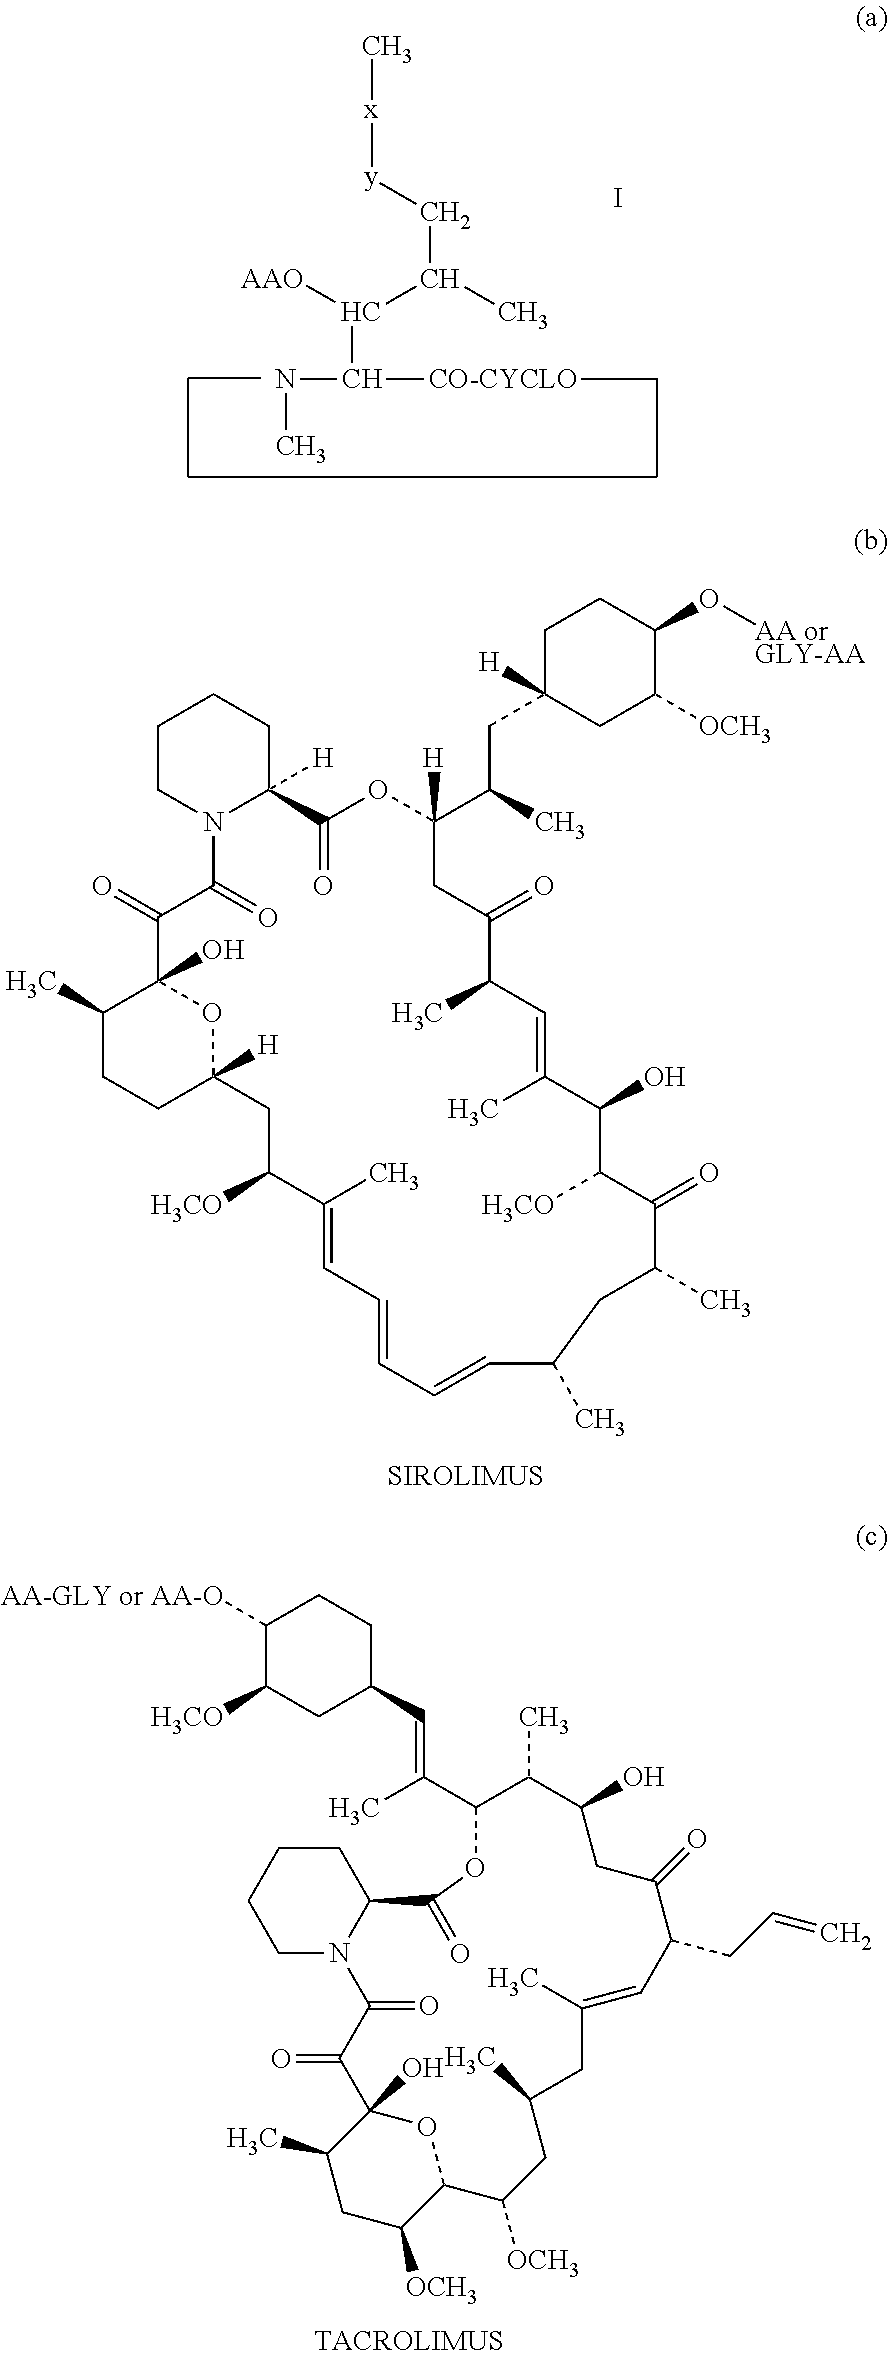 US20120289471A1 - Novel compounds with high therapeutic